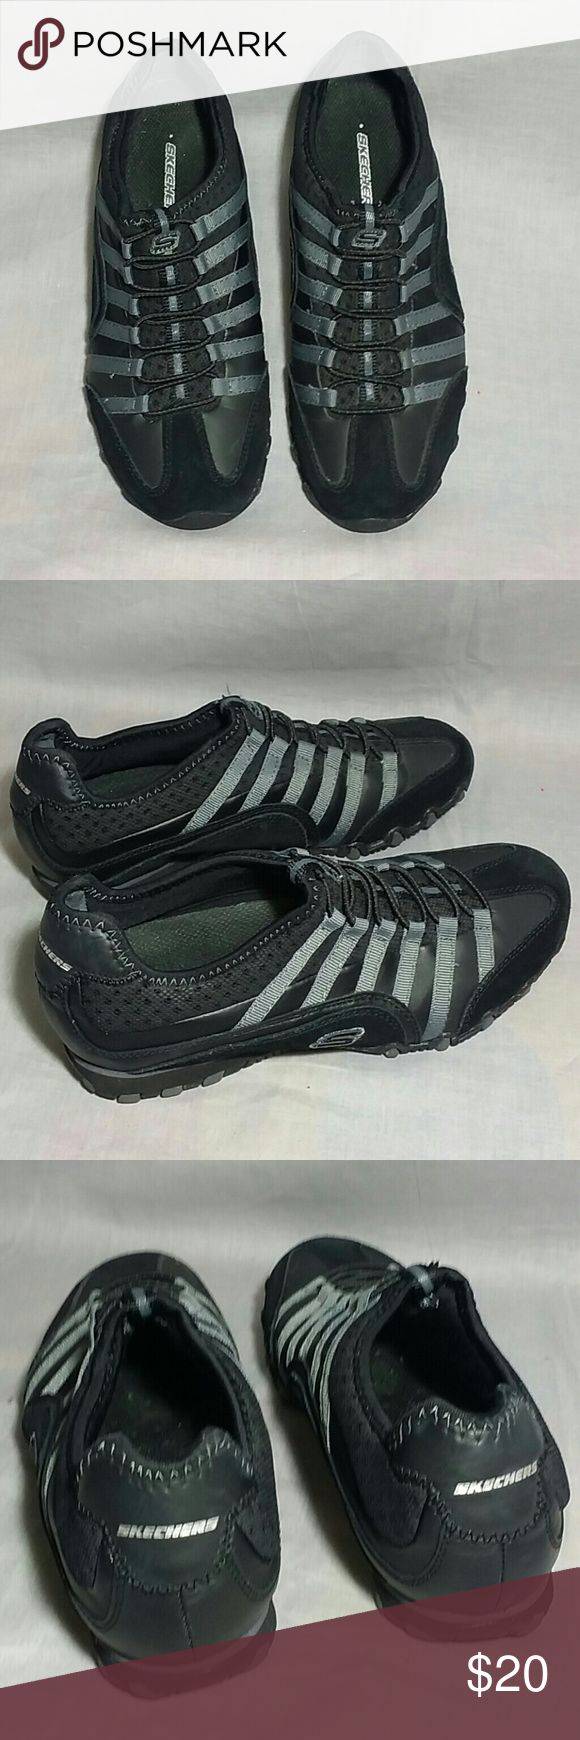 Skechers Slip-on Shoes 6 M leather Black / Gray Item is in a good condition, NO PETS AND SMOKE FREE HOME. skechers  Shoes Flats & Loafers